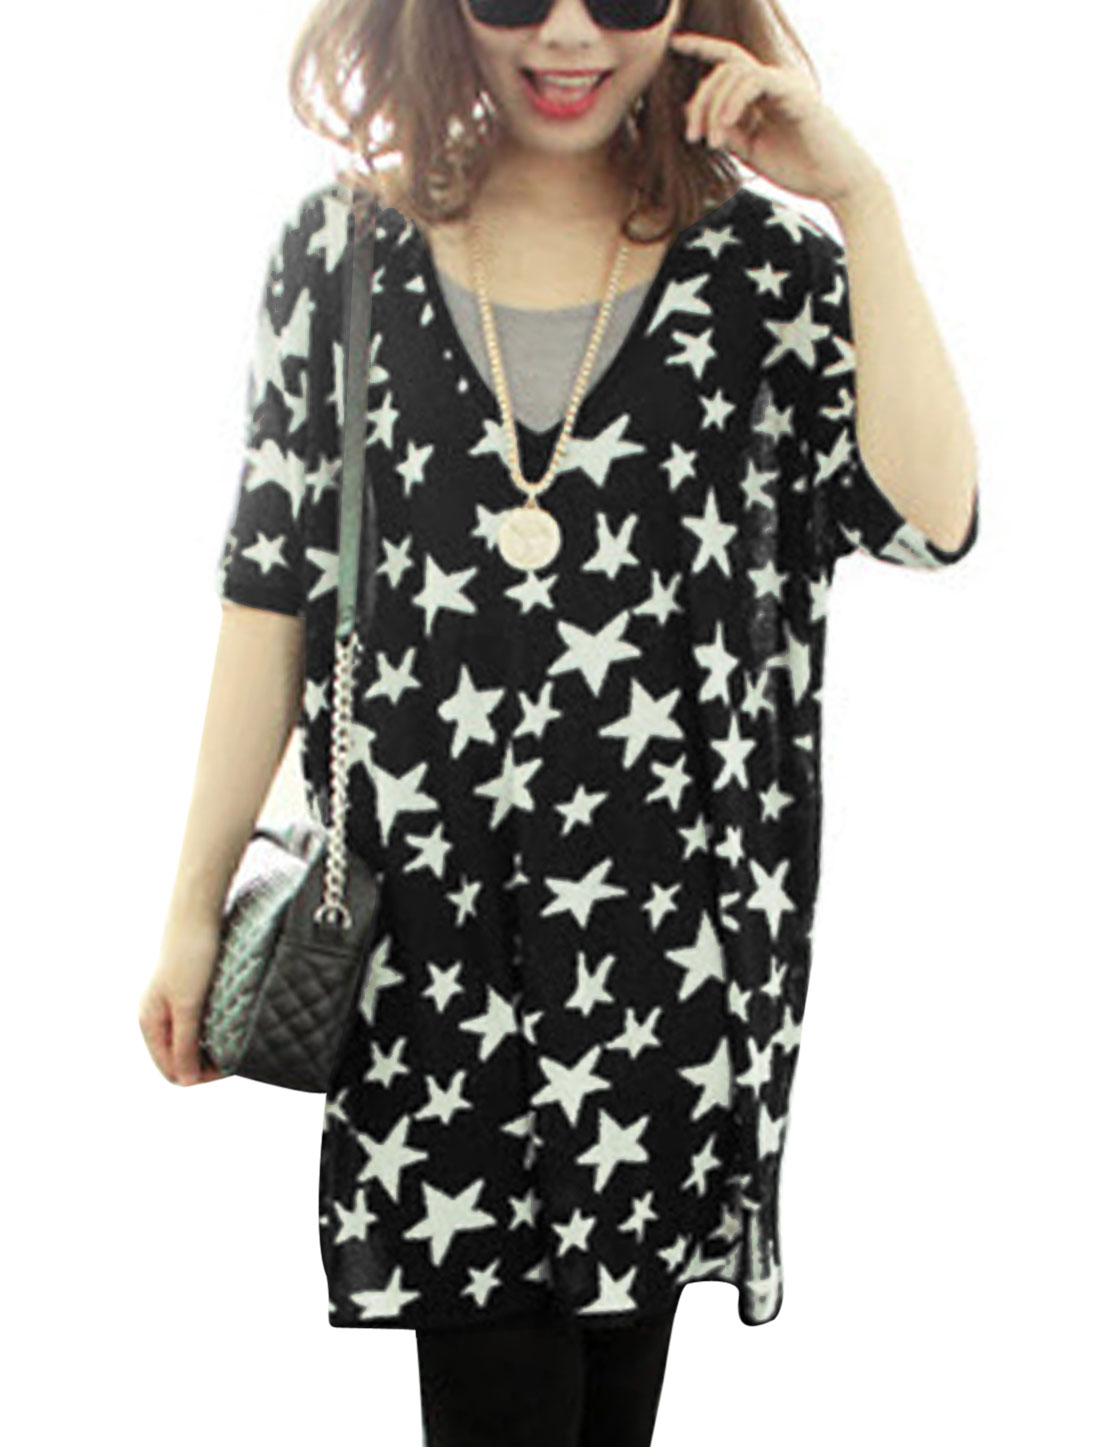 Women Stars Pattern Batwing Sleeve Split Side See Through Tunic Top Black White S